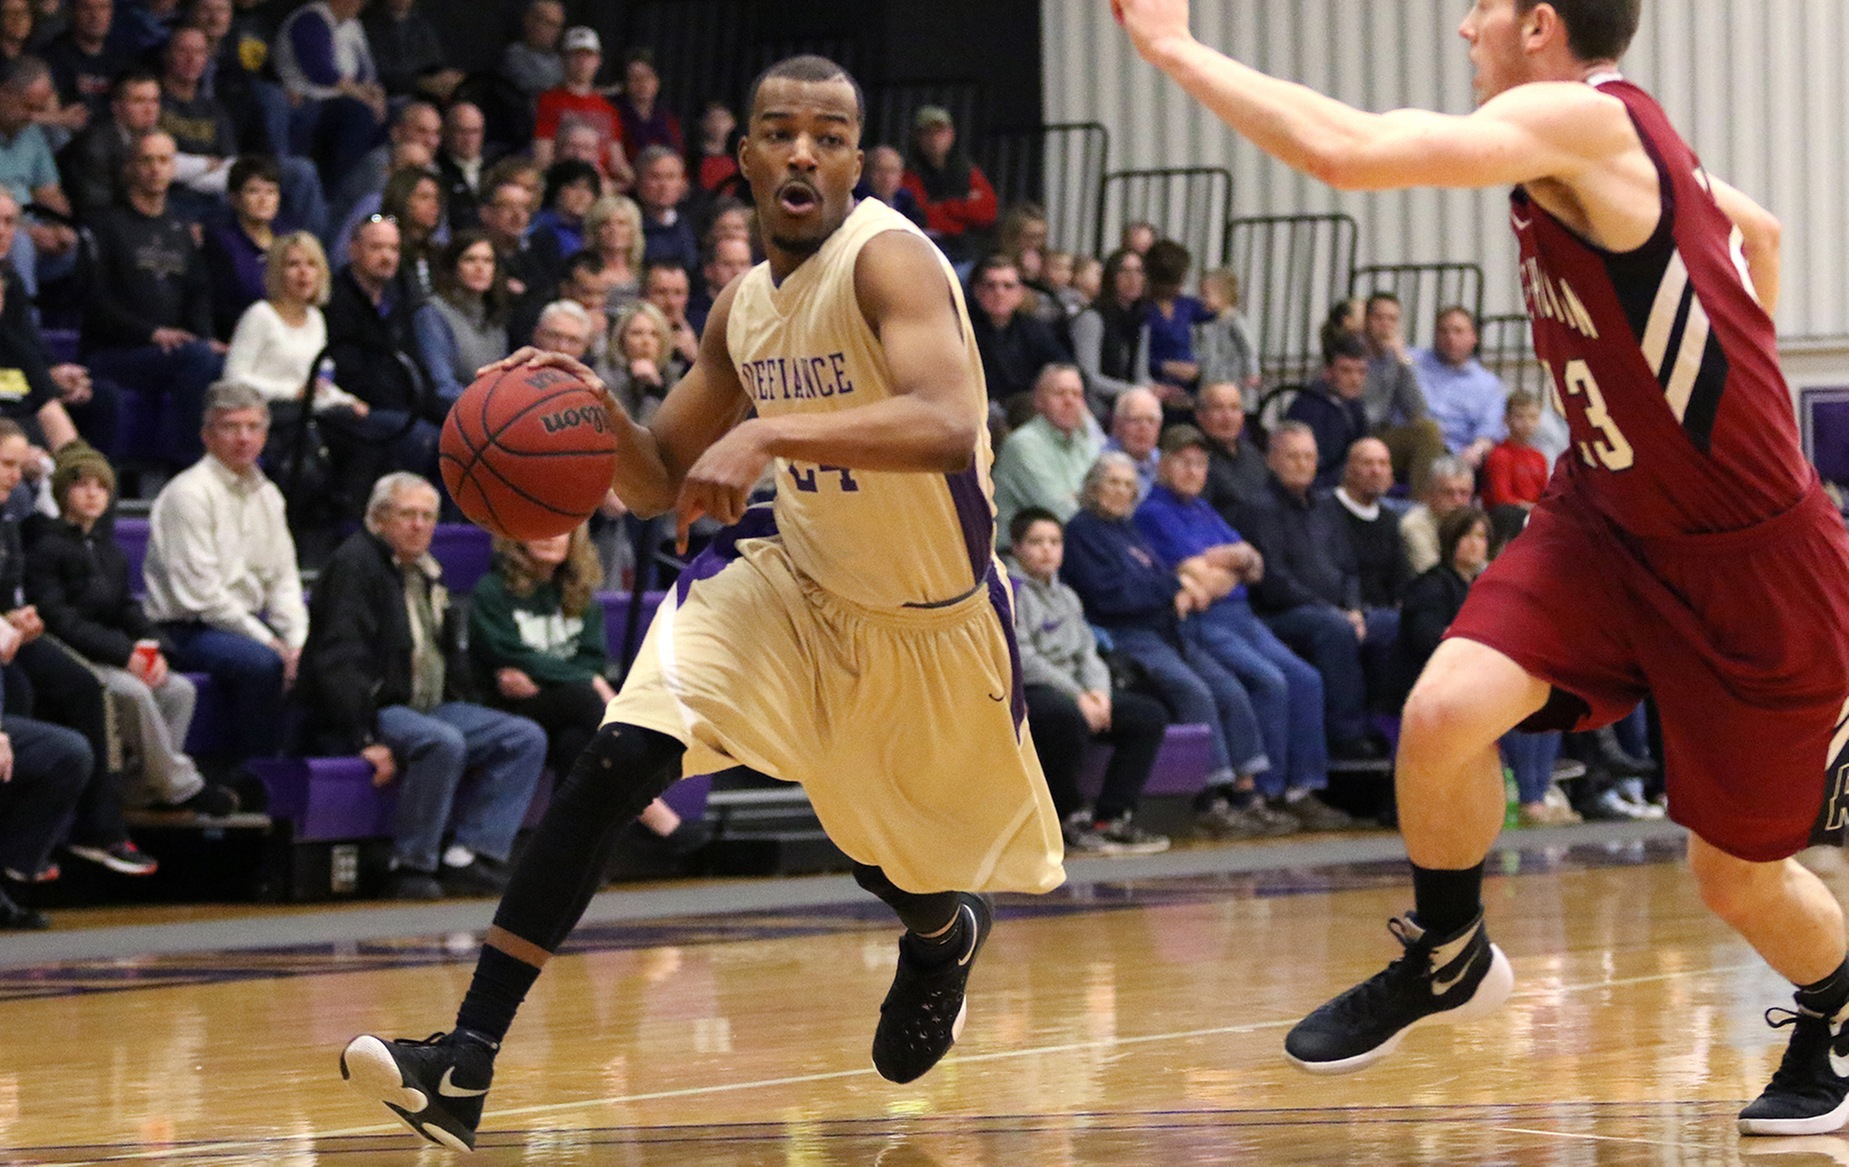 Men's Hoops Beaten By Transylvania in Double Overtime